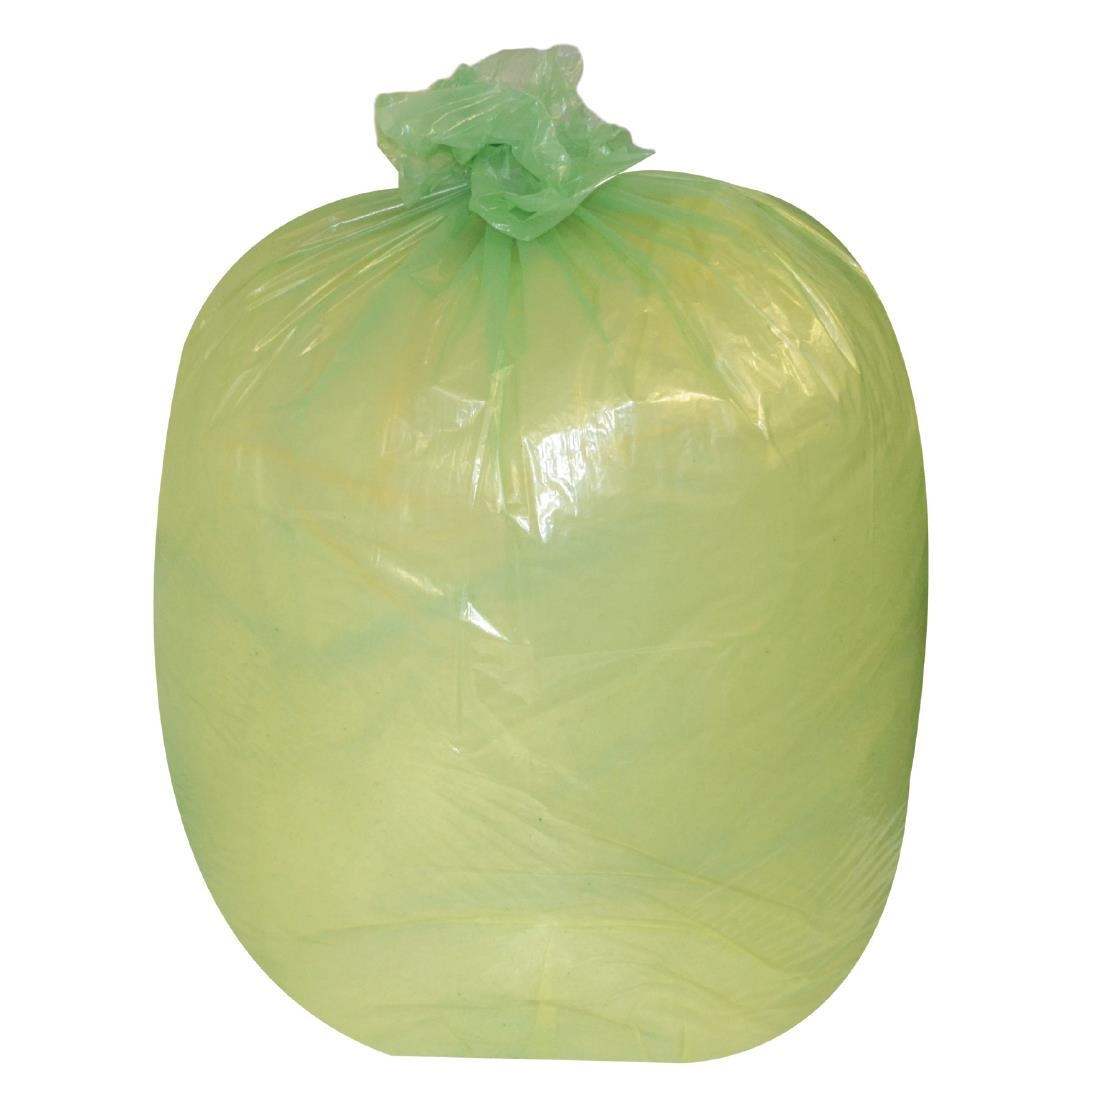 Image of Jantex Large Medium Duty Green Bin Bags 90Ltr (Pack of 200) Pack of 200